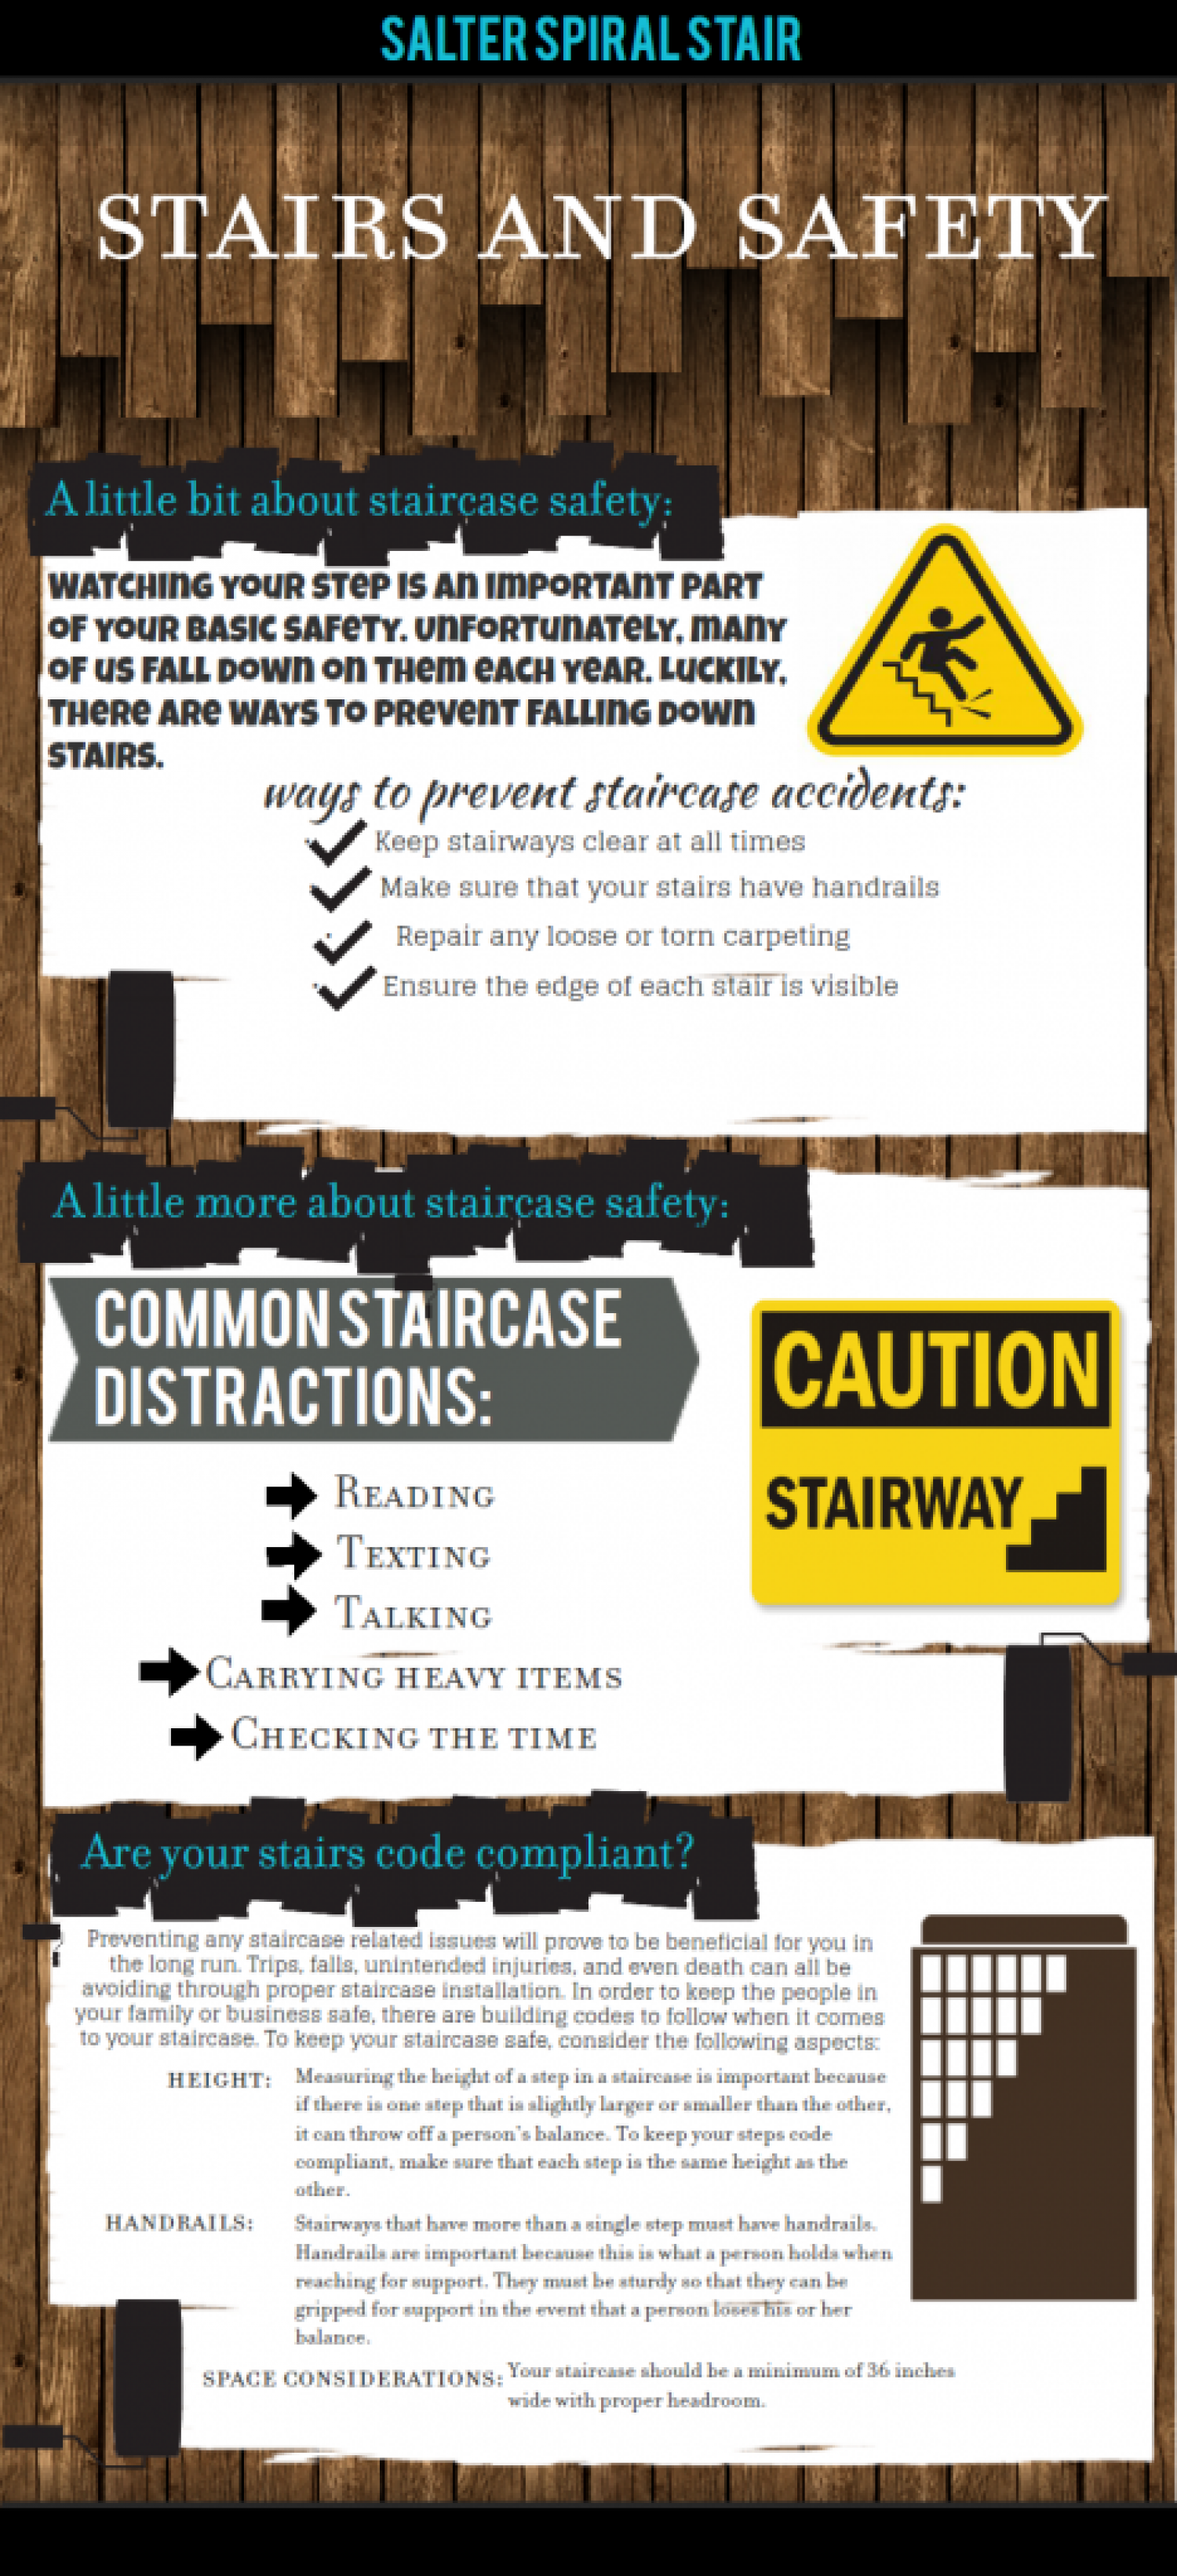 Stairs and Safety Infographic